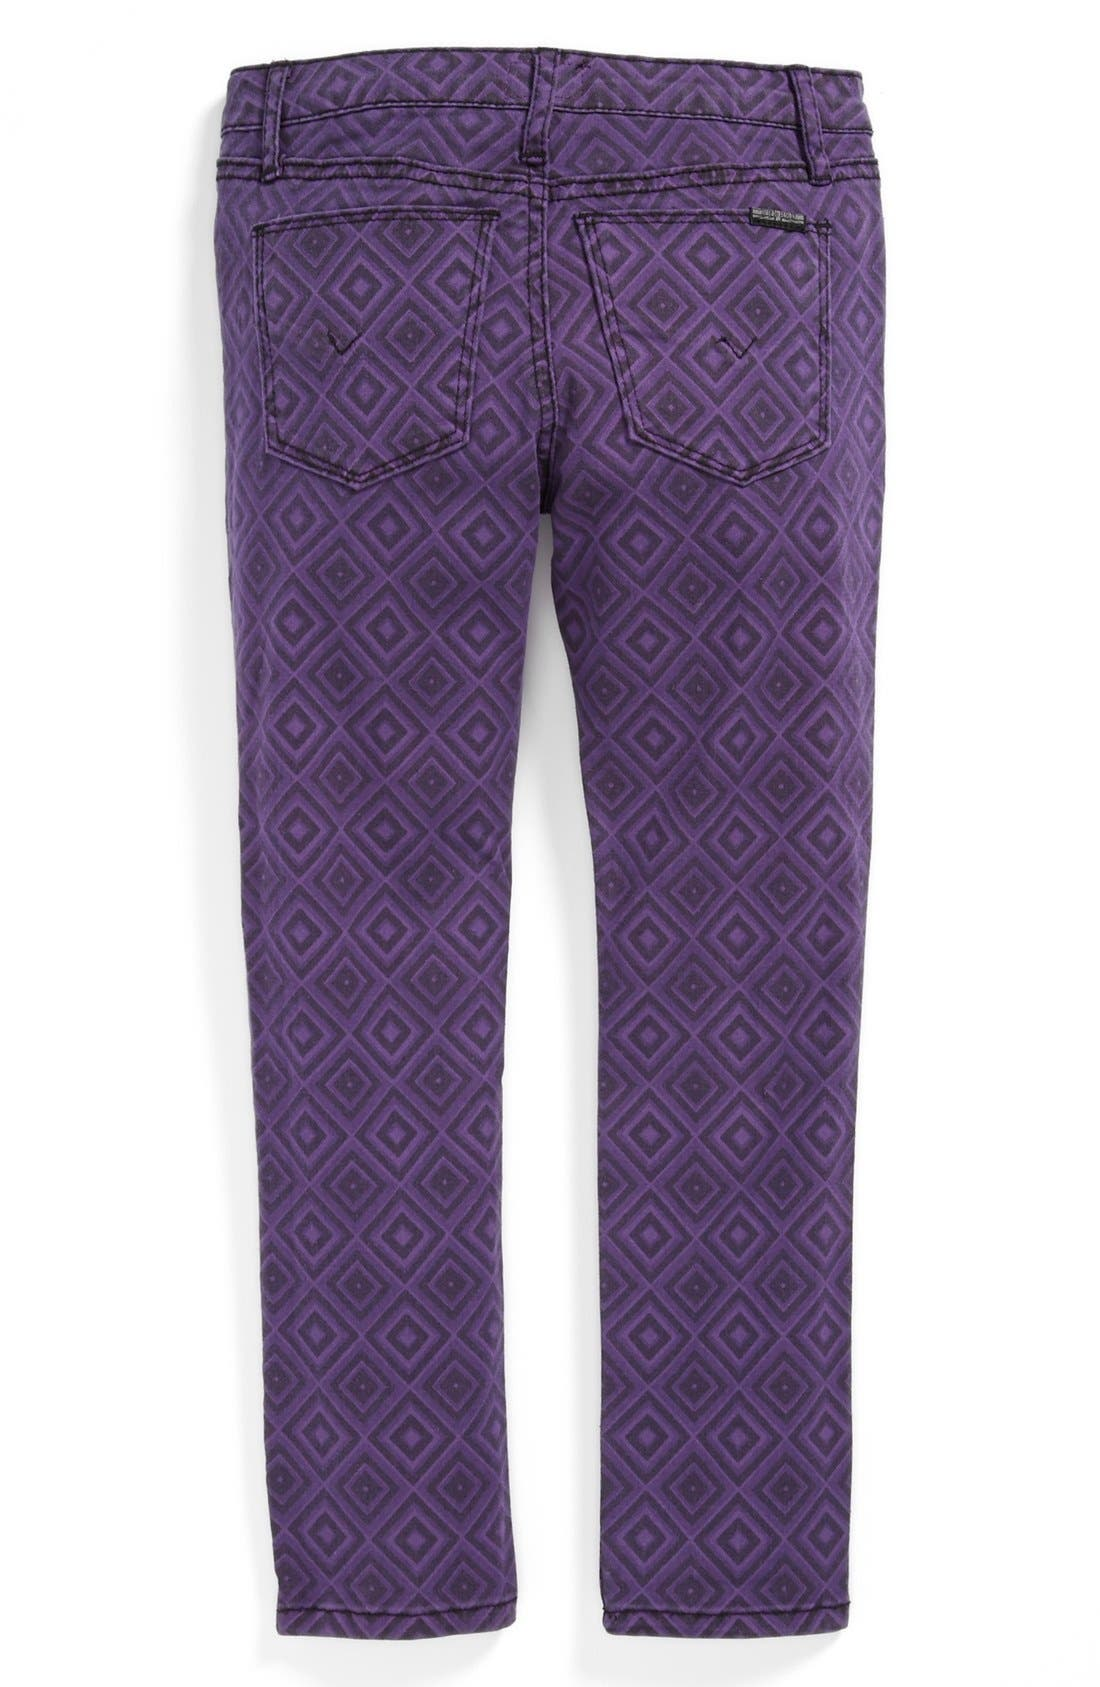 Main Image - Hudson Kids 'Dolly' Skinny Jeans (Little Girls)